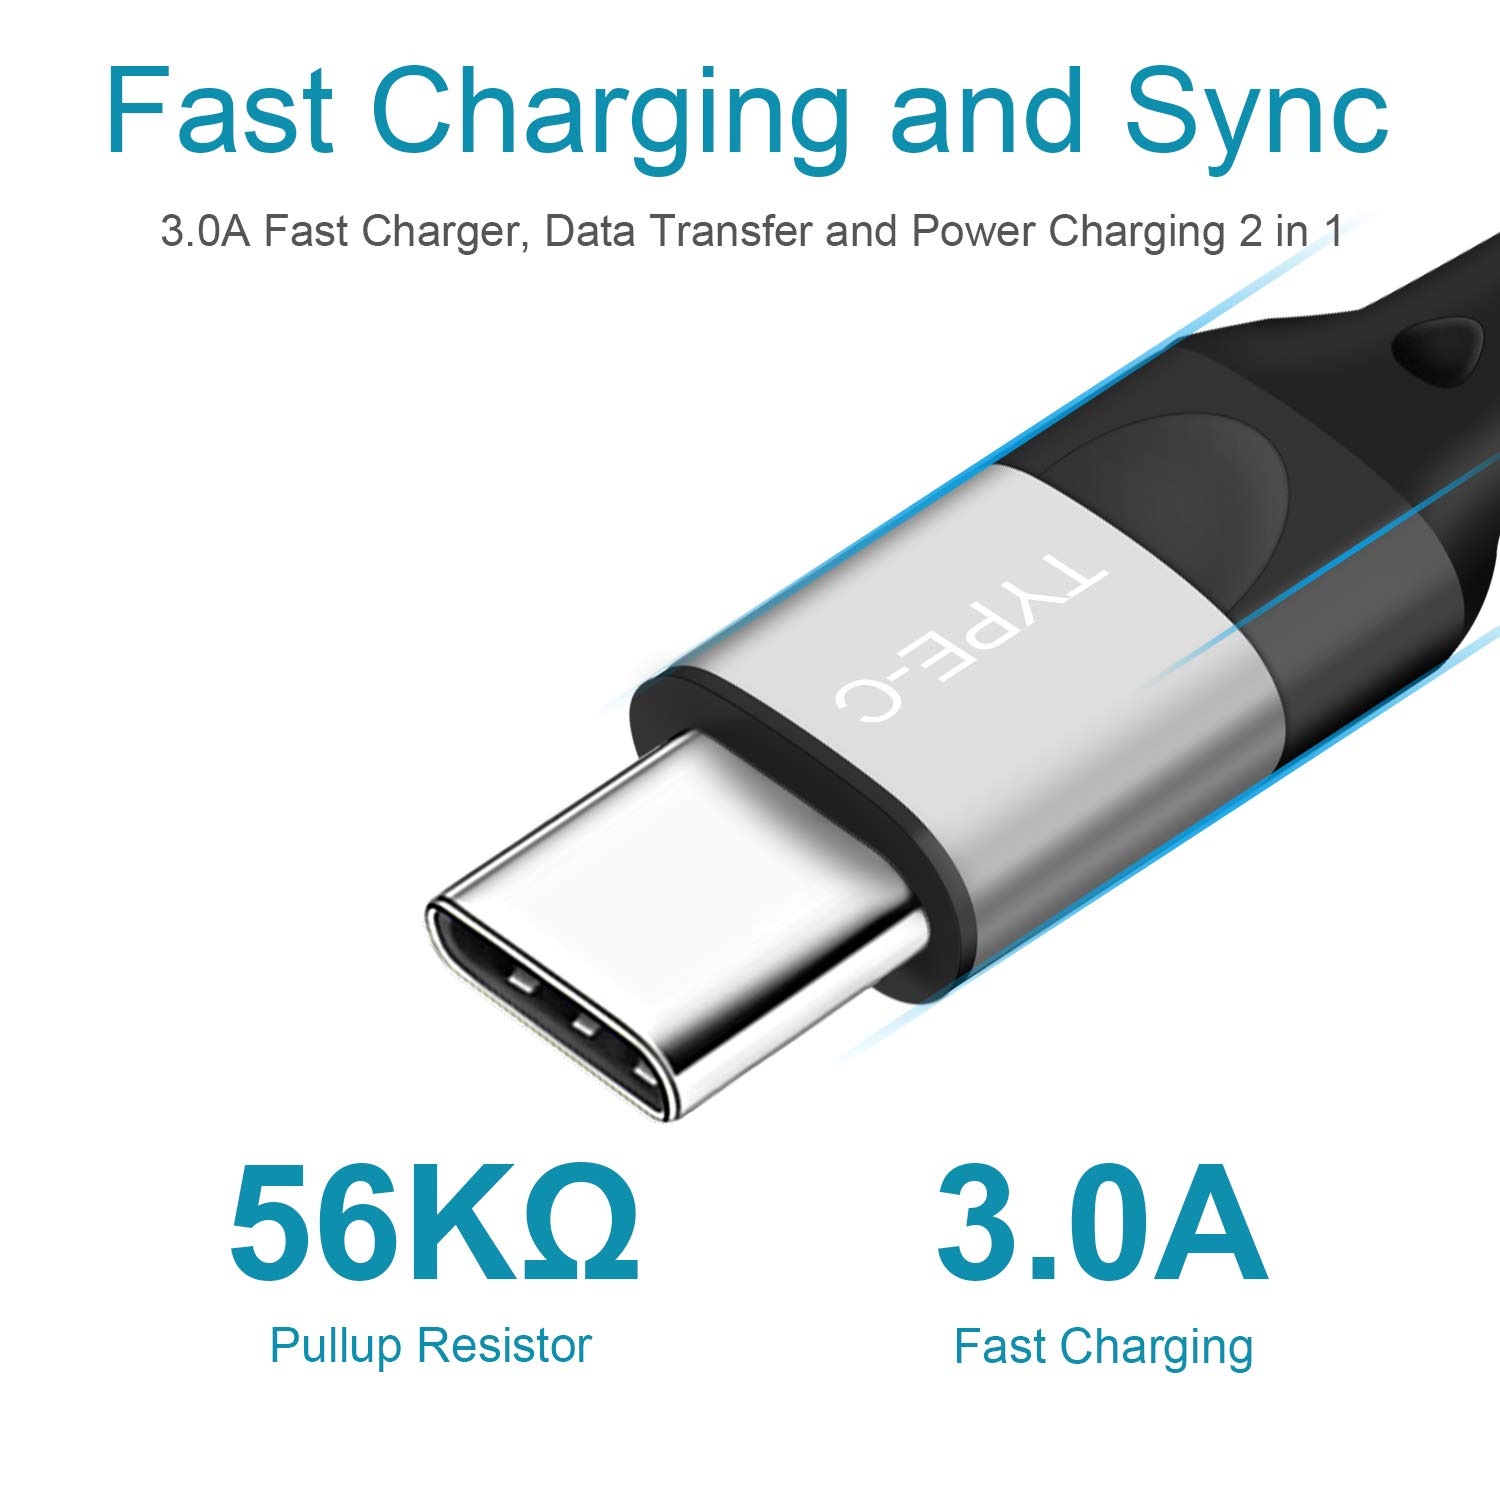 V20,Moto Motorola X4 Z4 Z3 Z2 Z Play//Droid//Force,Huawei P20 P30 Mate 20 30 Lite Pro Quick Charge 3.0+2.4A+2X3.3ft Fast Charging Cable 30W Dual USB Car Charger for LG V40 V35 V50 Thinq V30 V30 Q7 Q7